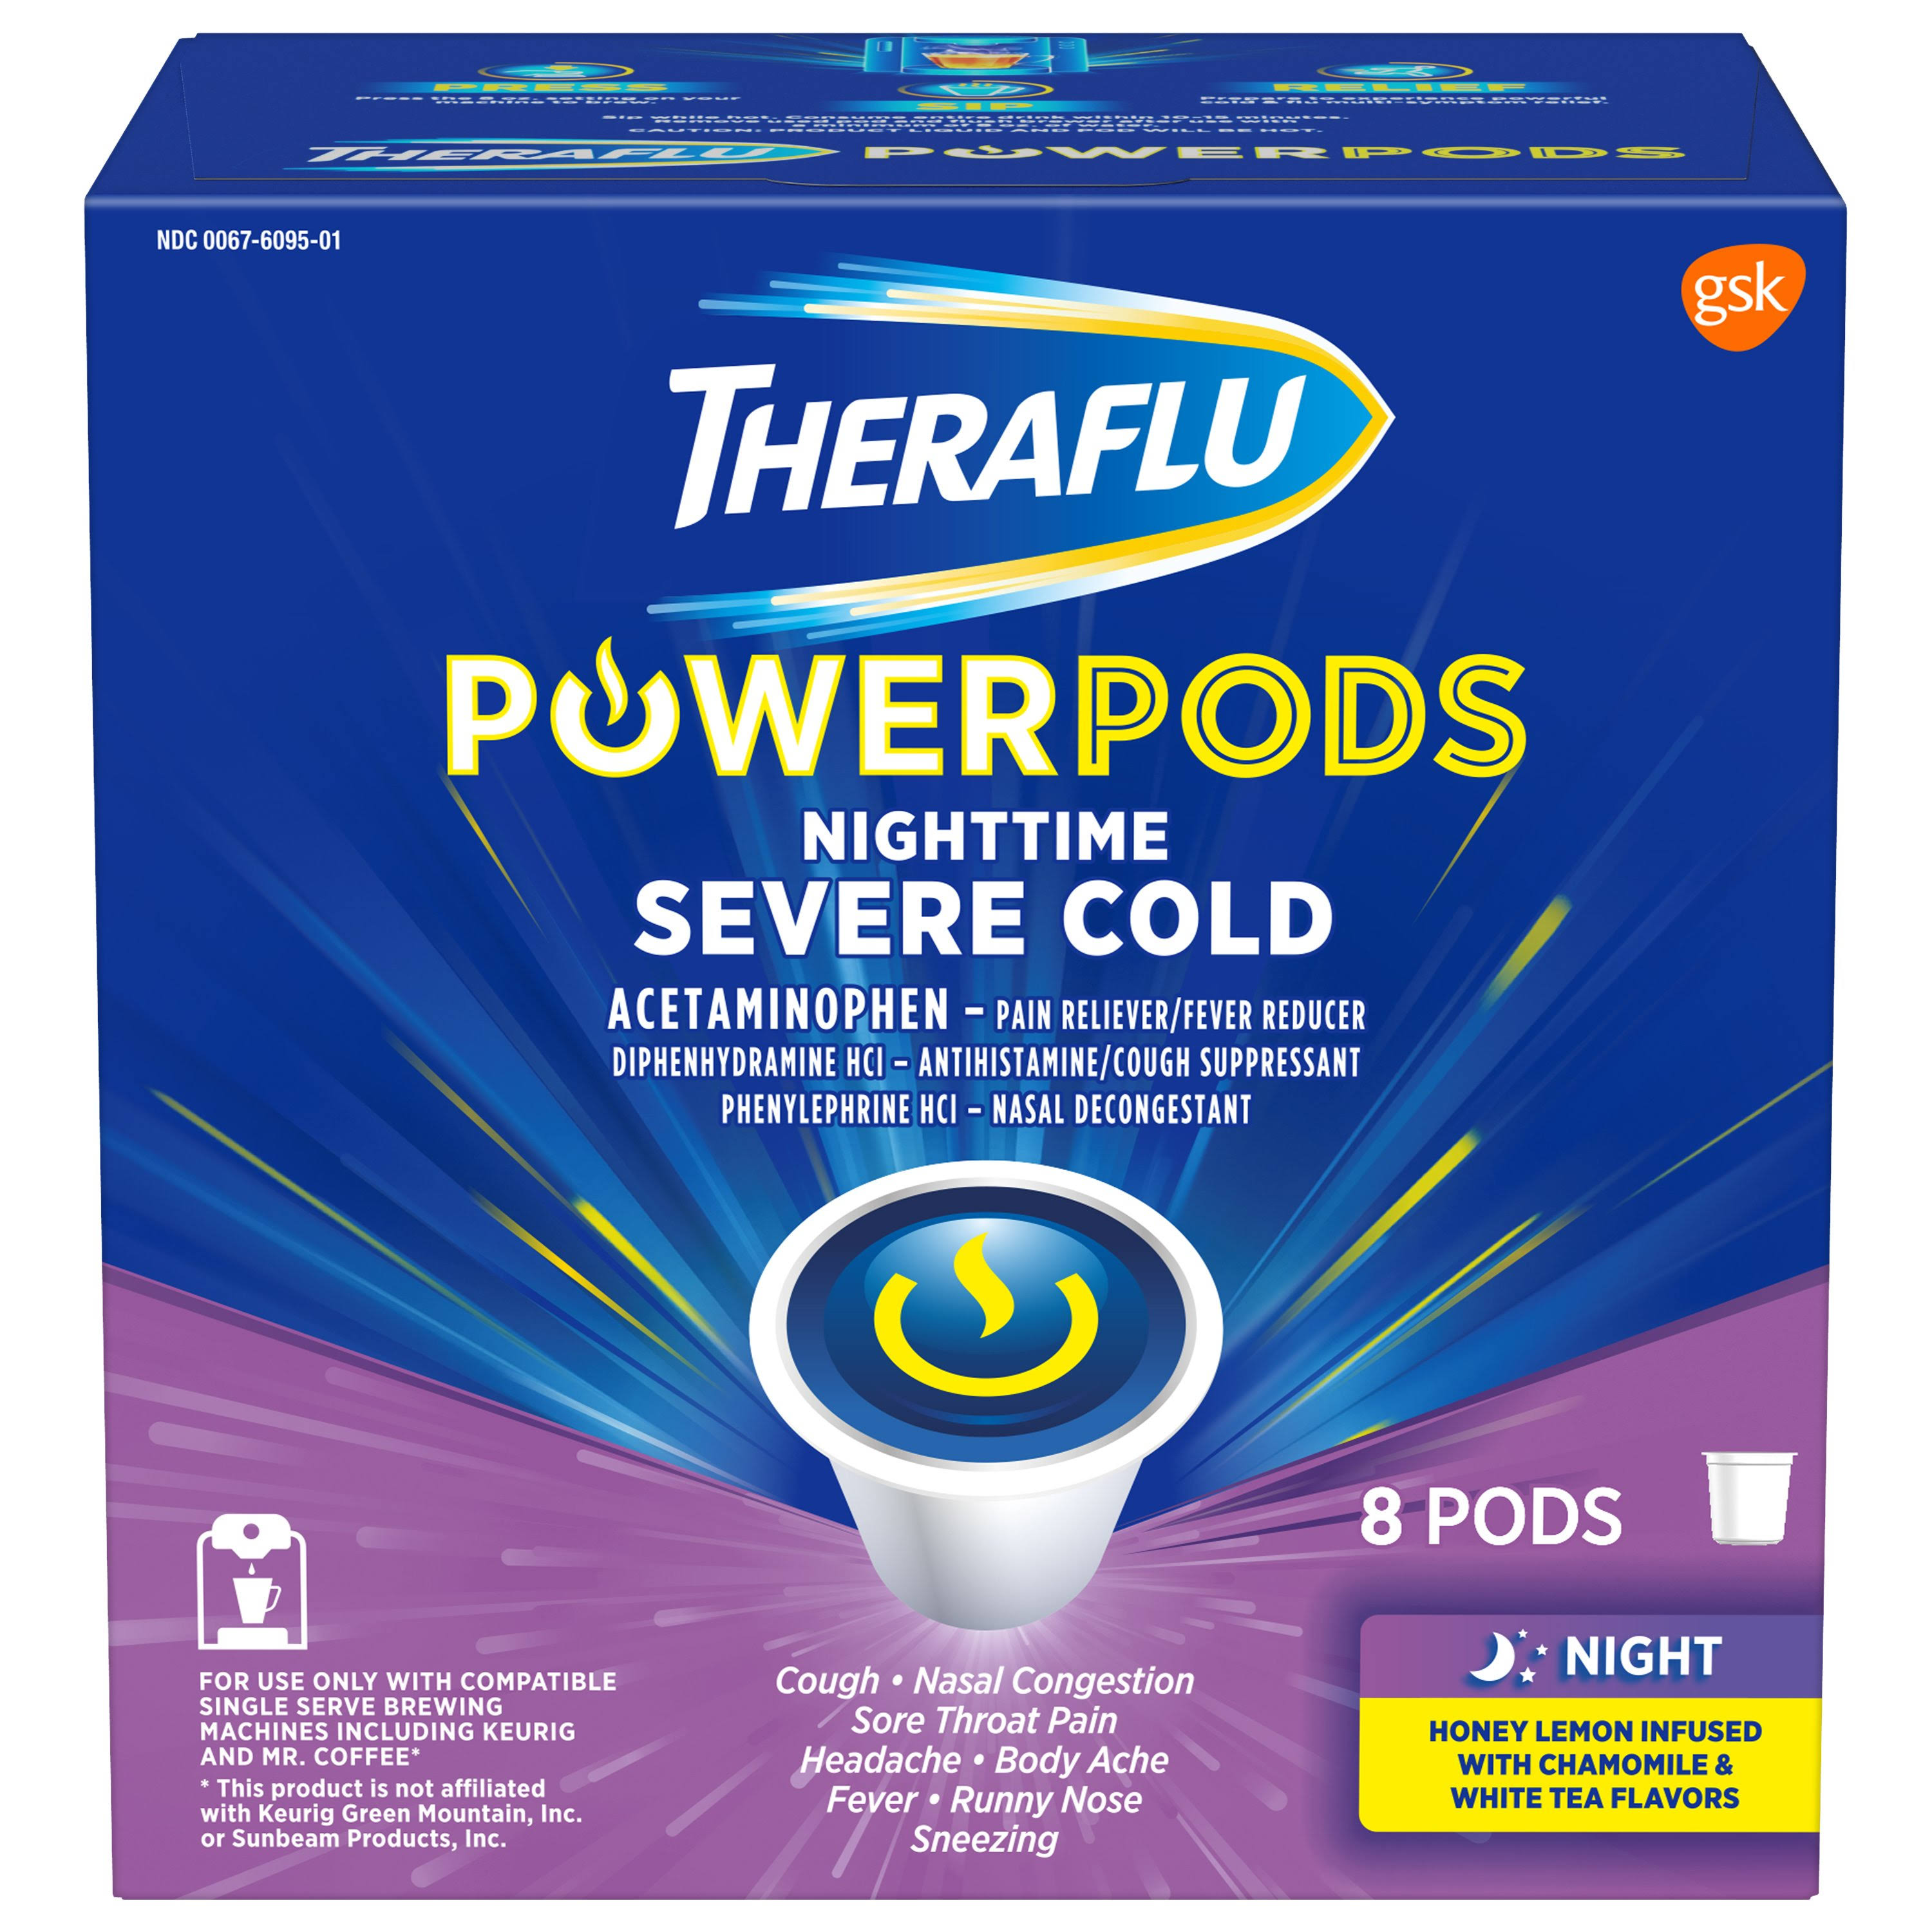 Theraflu Powerpods Nighttime Severe Cold Medicine - Honey Lemon With Chamomile & White Tea, 8 Pods